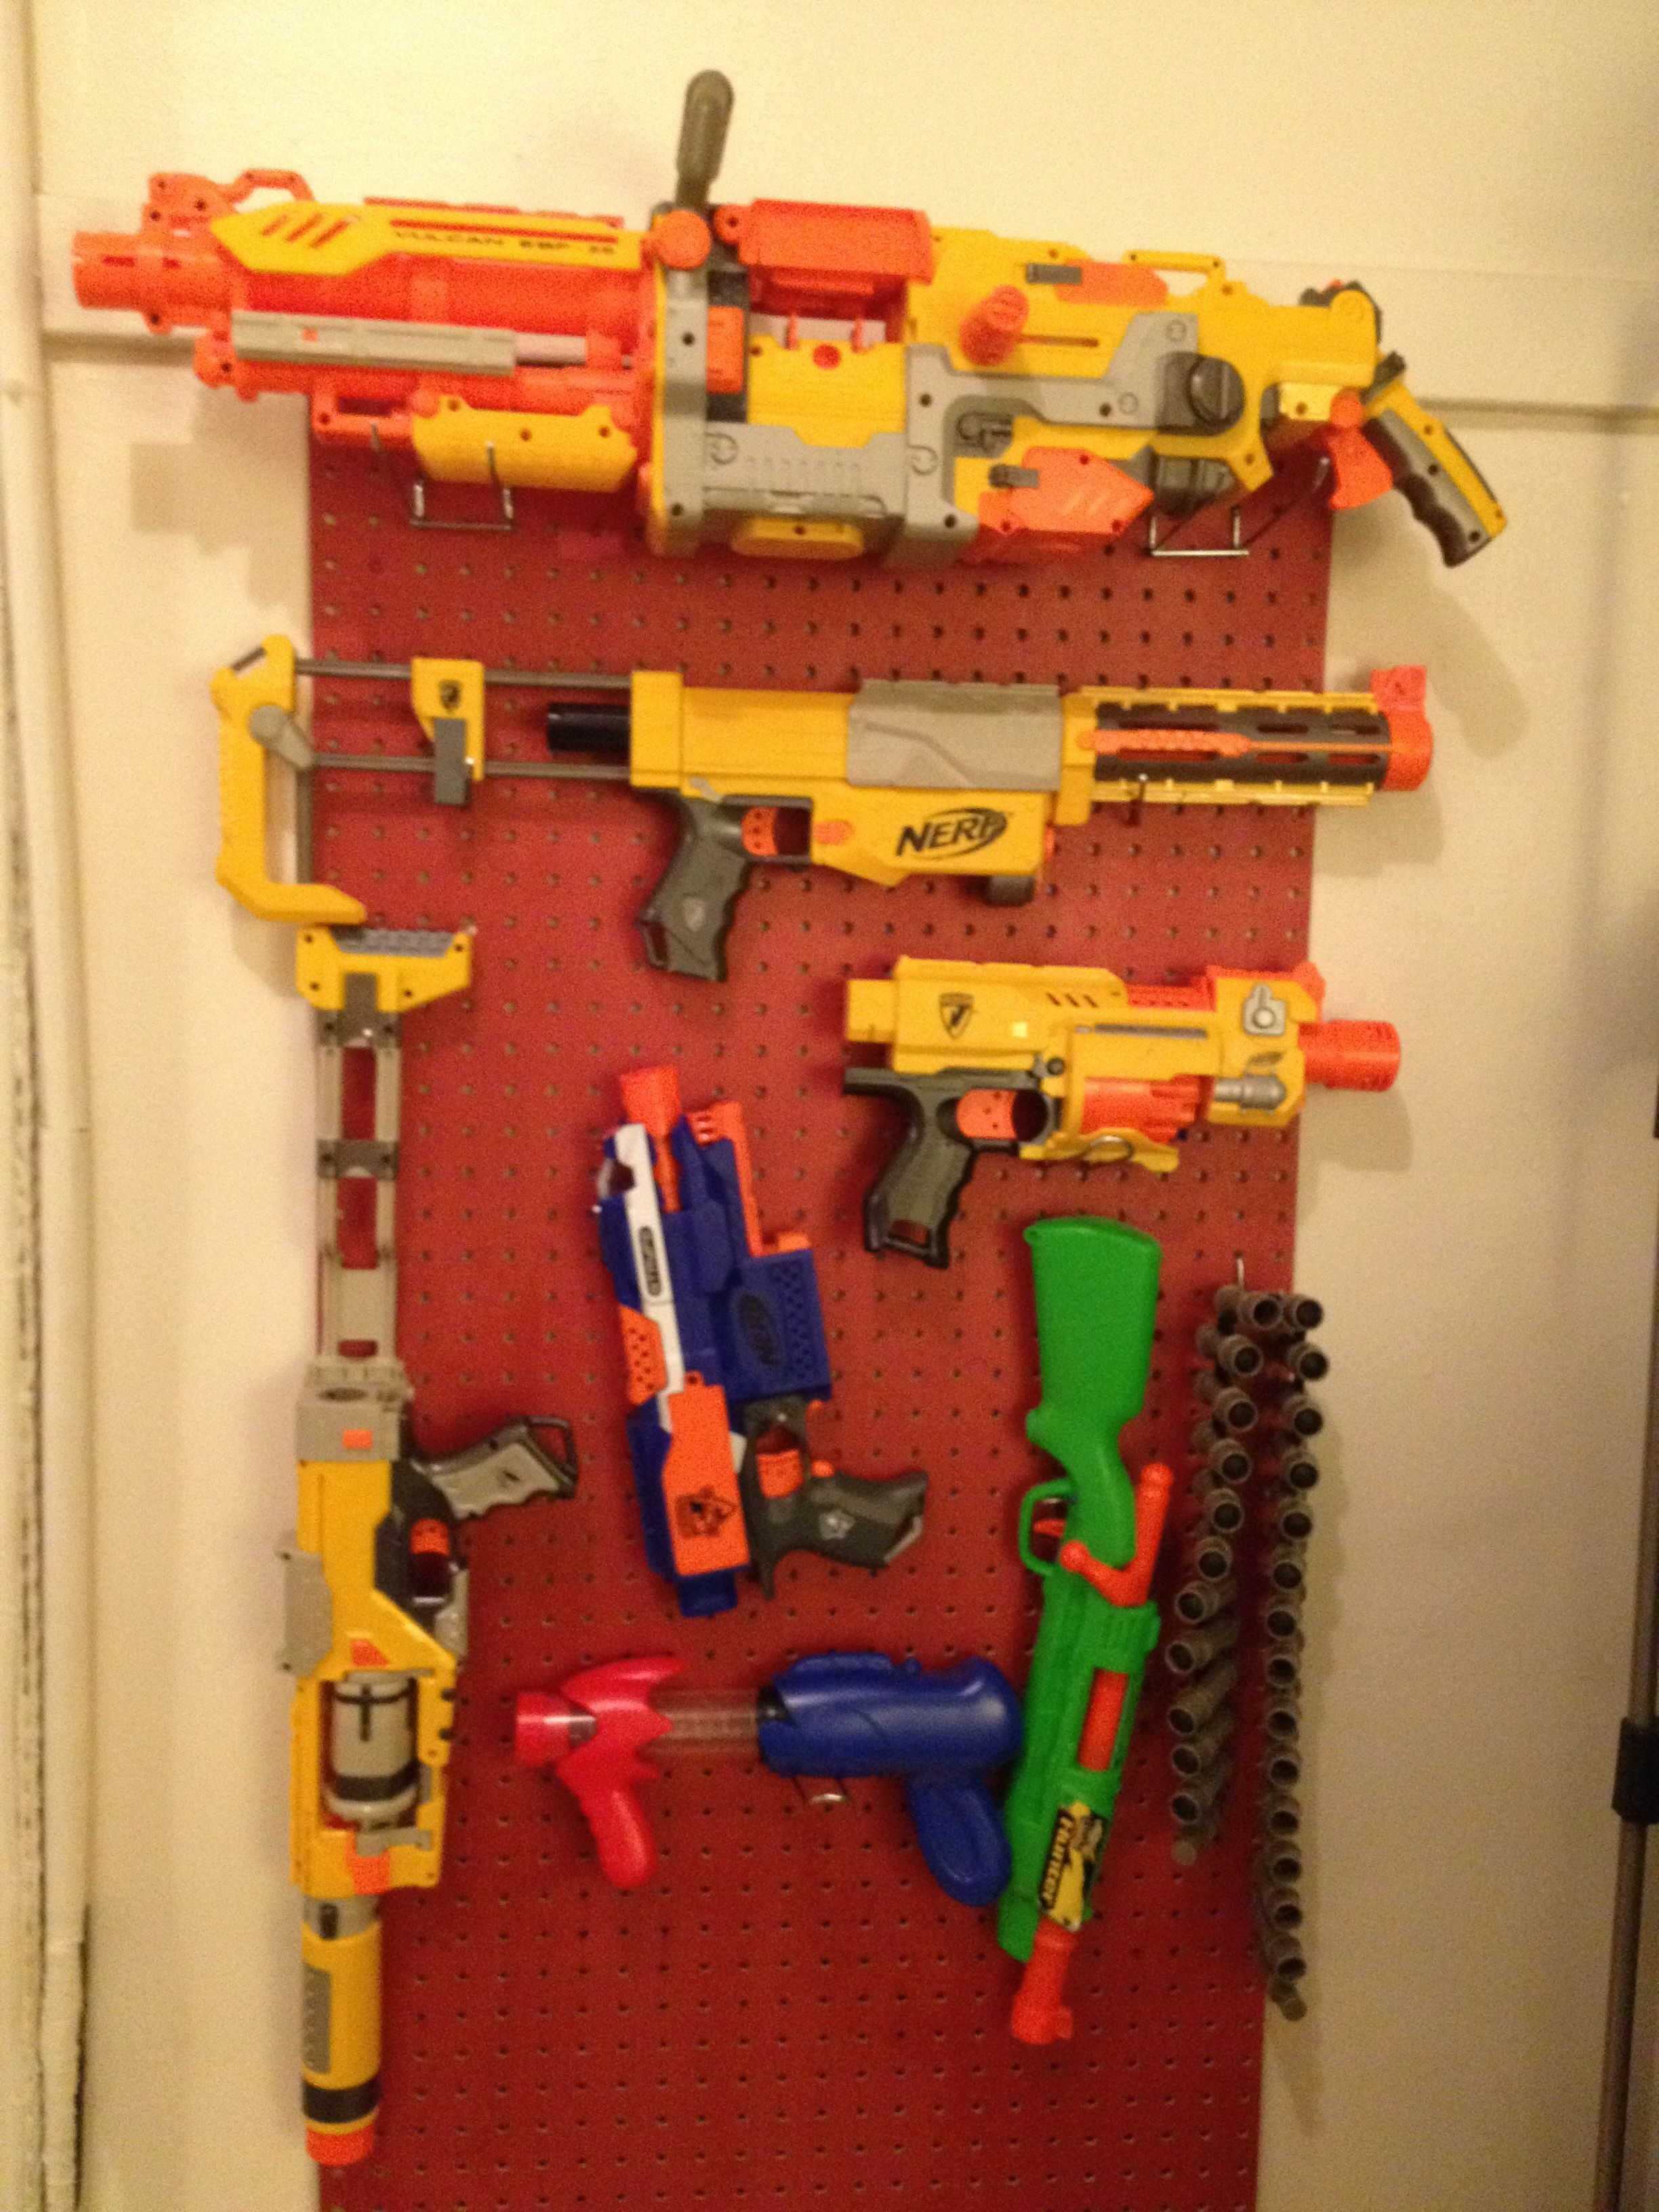 Space for 30 guns on the rack - 15 top and 15 bottom. The longer guns can  lay on the base between the rack and the pegboard.